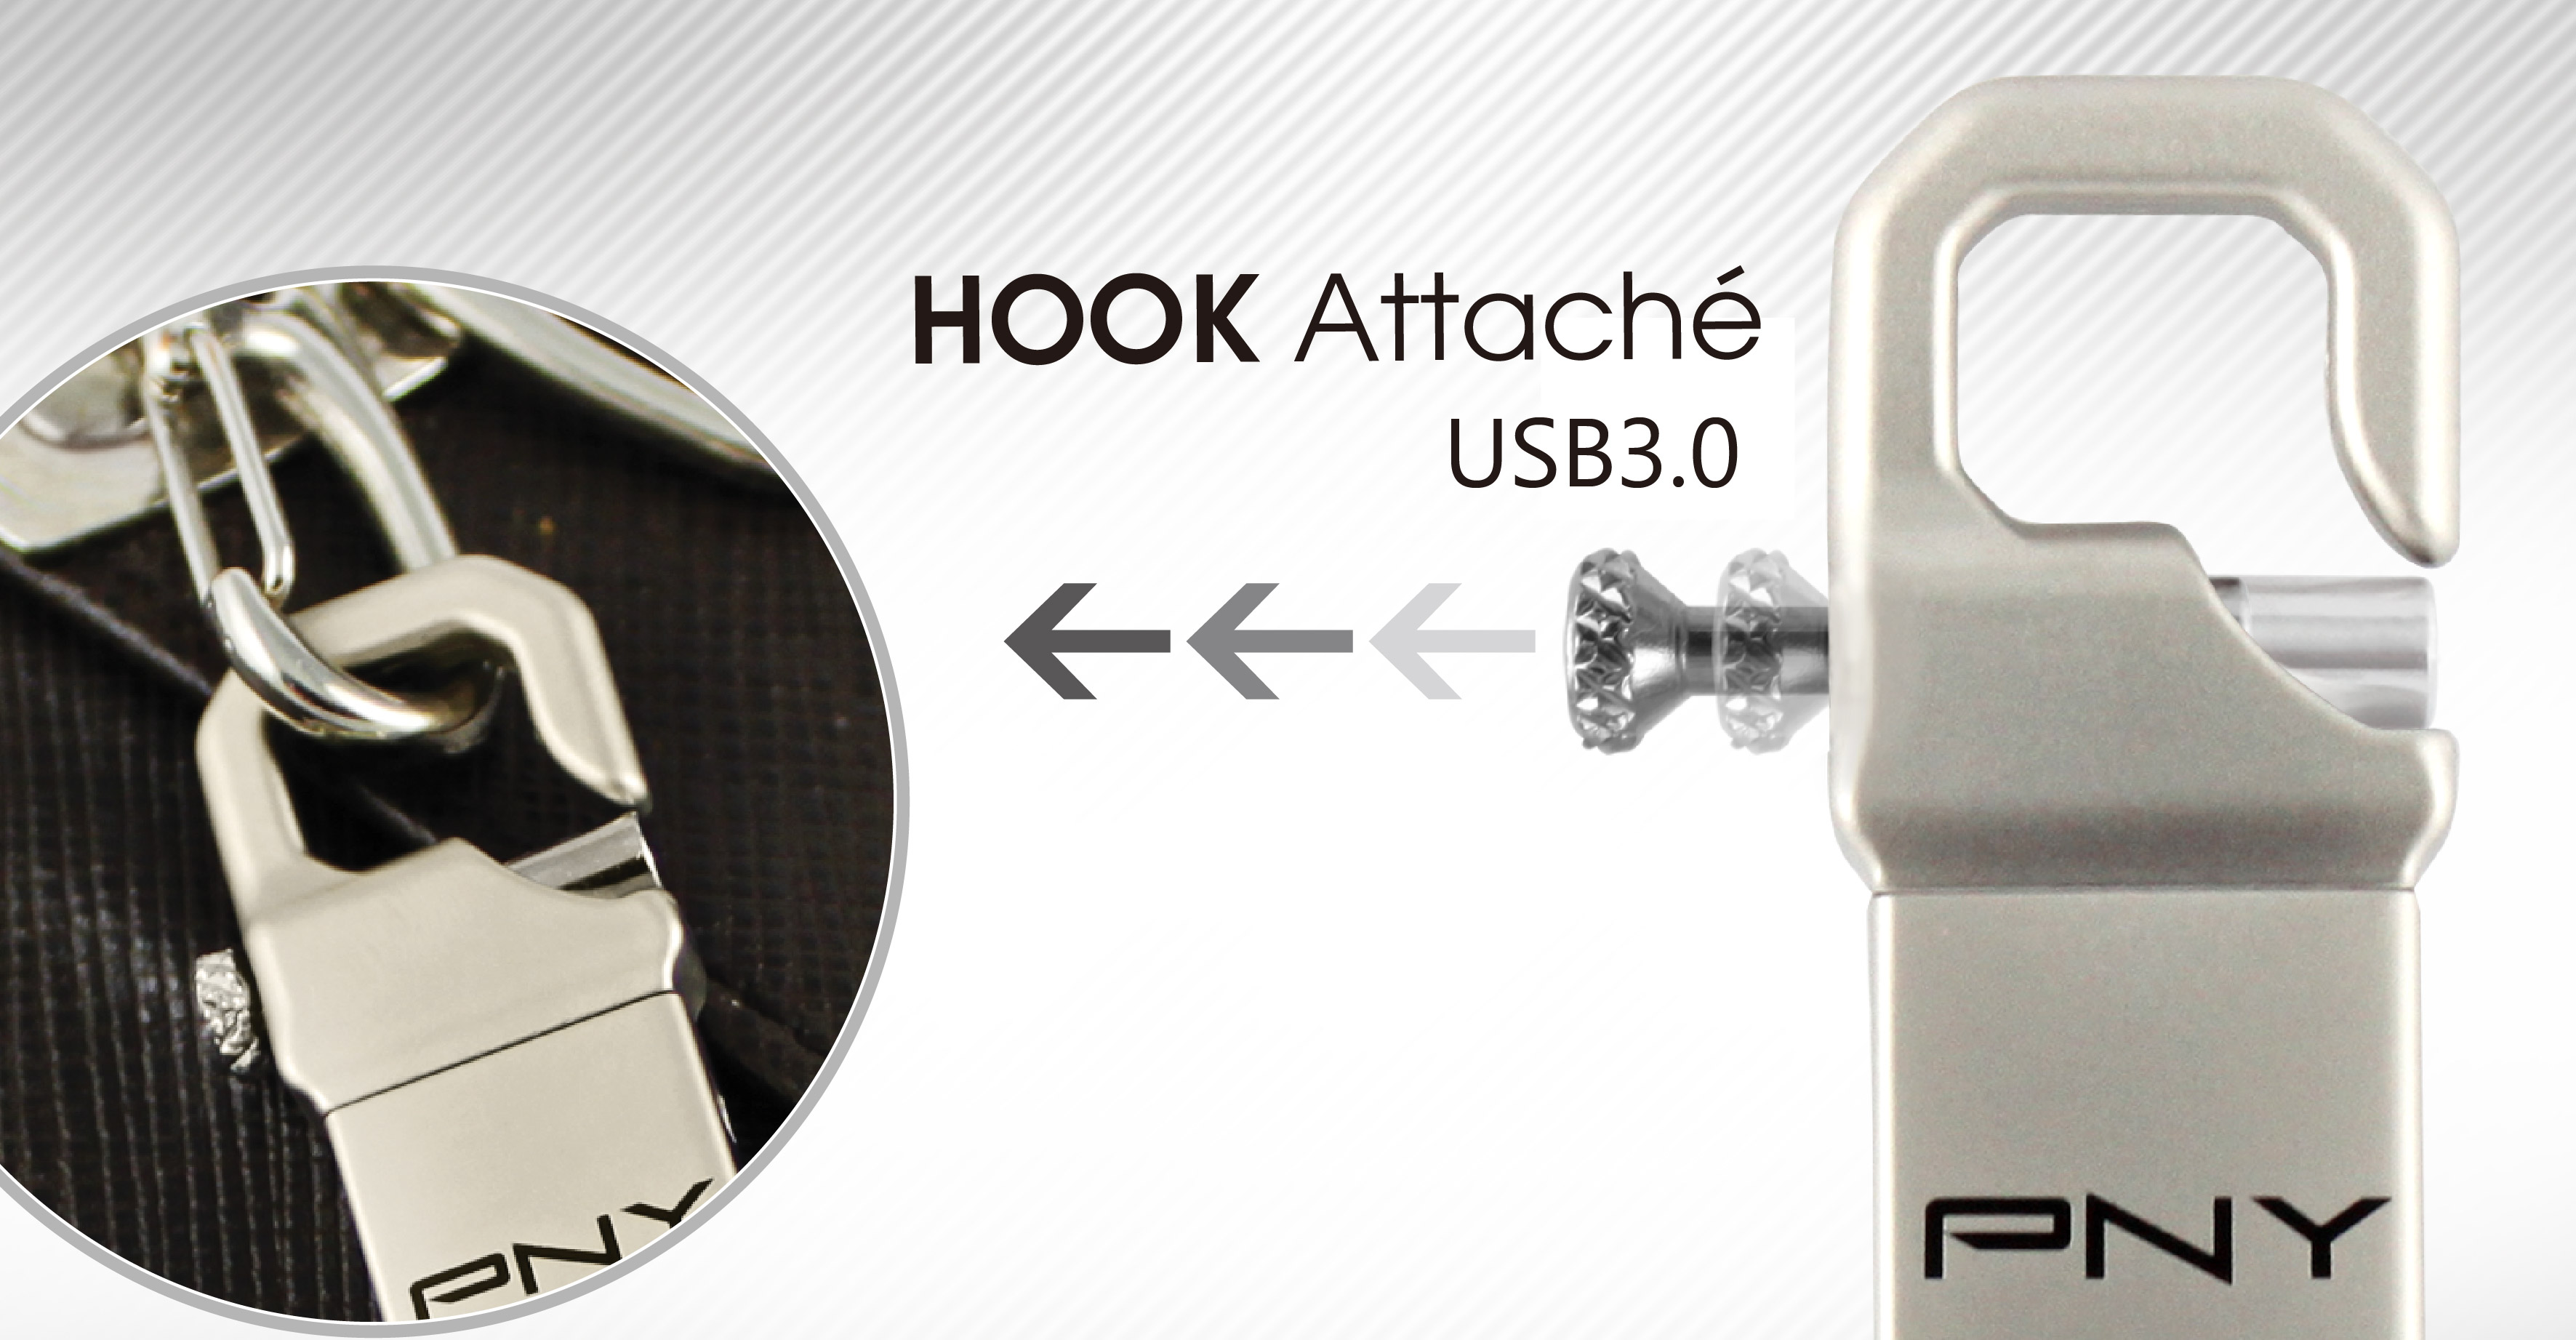 PNY releases USB Drive 3.0 the Hook Attaché